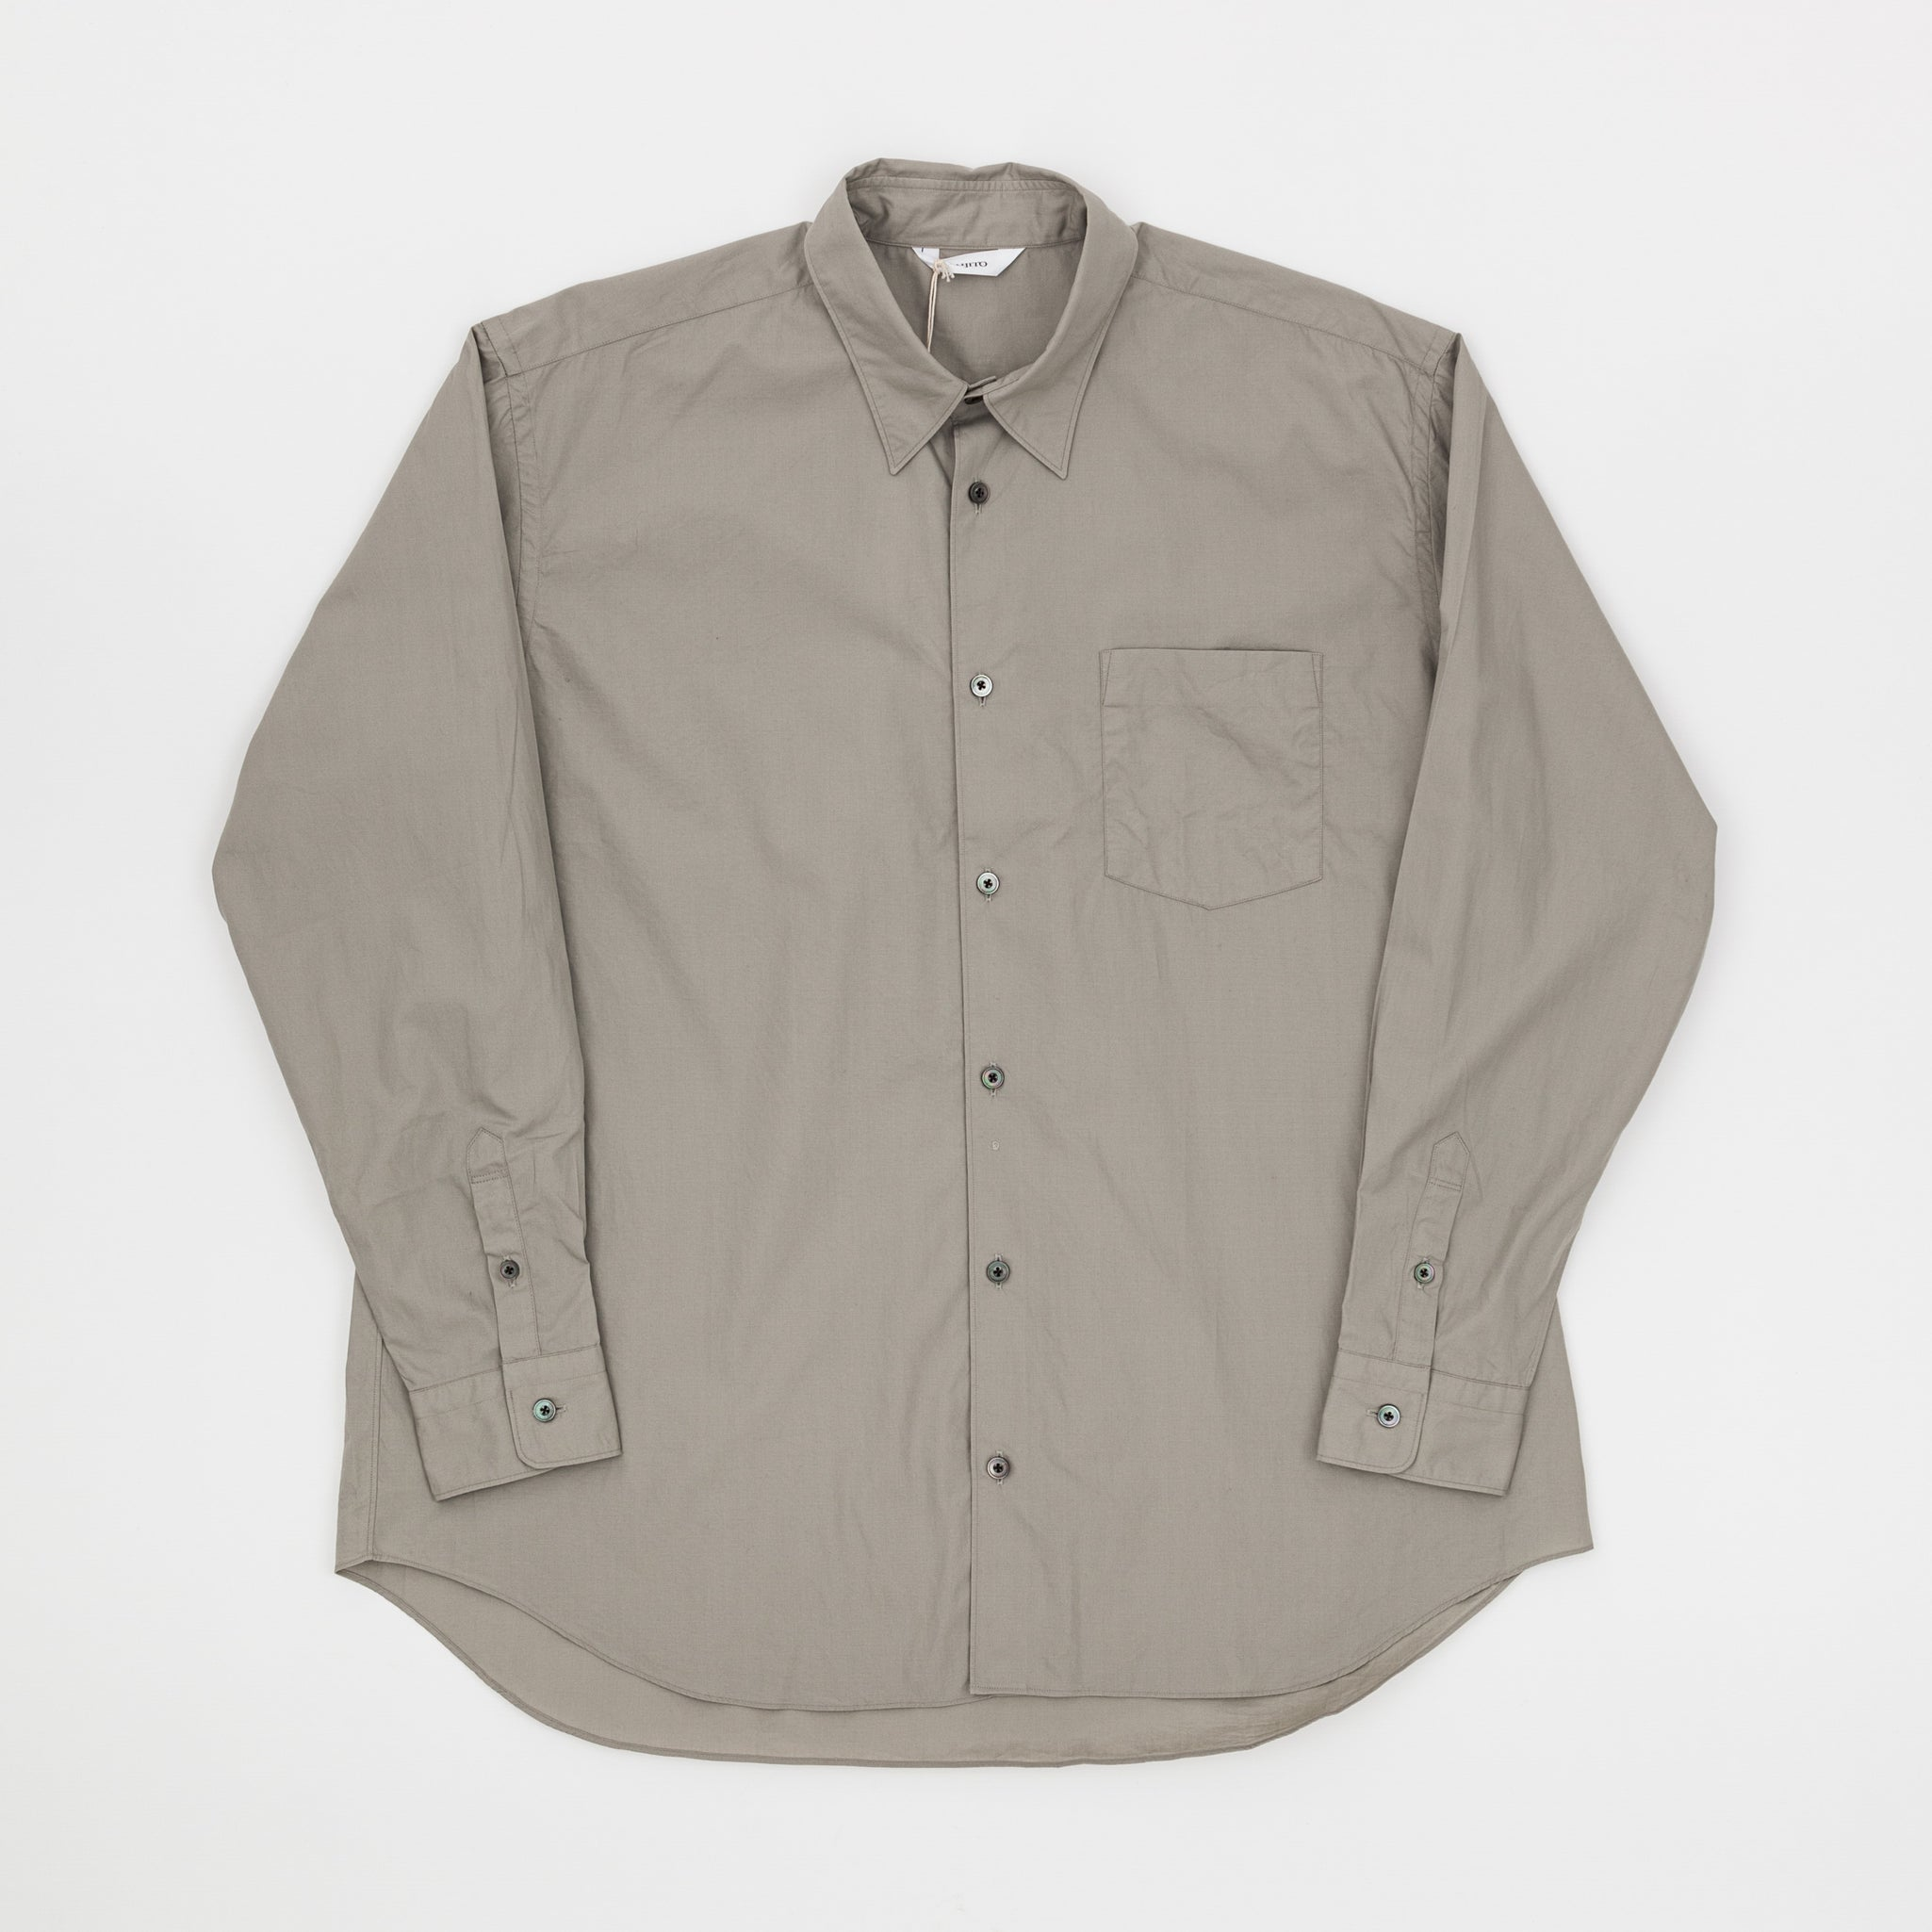 B/S Shirt (Solid)